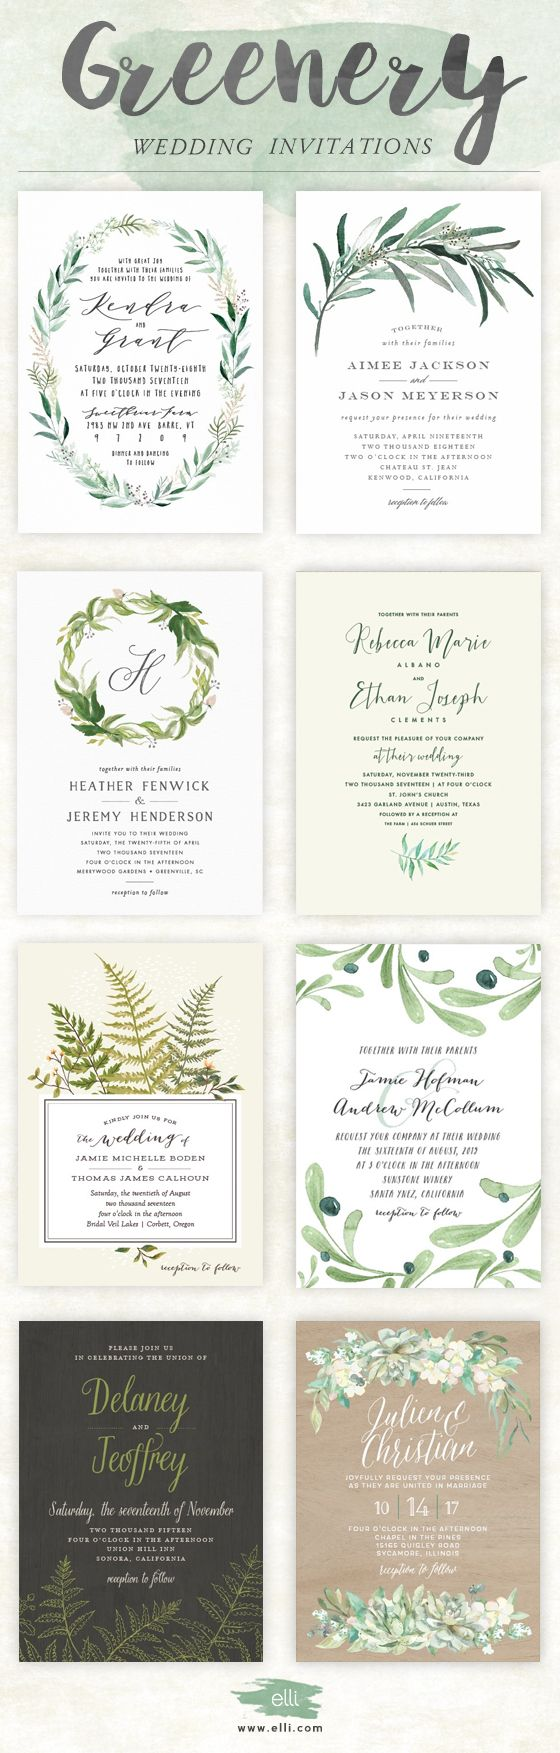 sample of wedding invitation letter%0A Trending for       greenery wedding invitations from Elli com